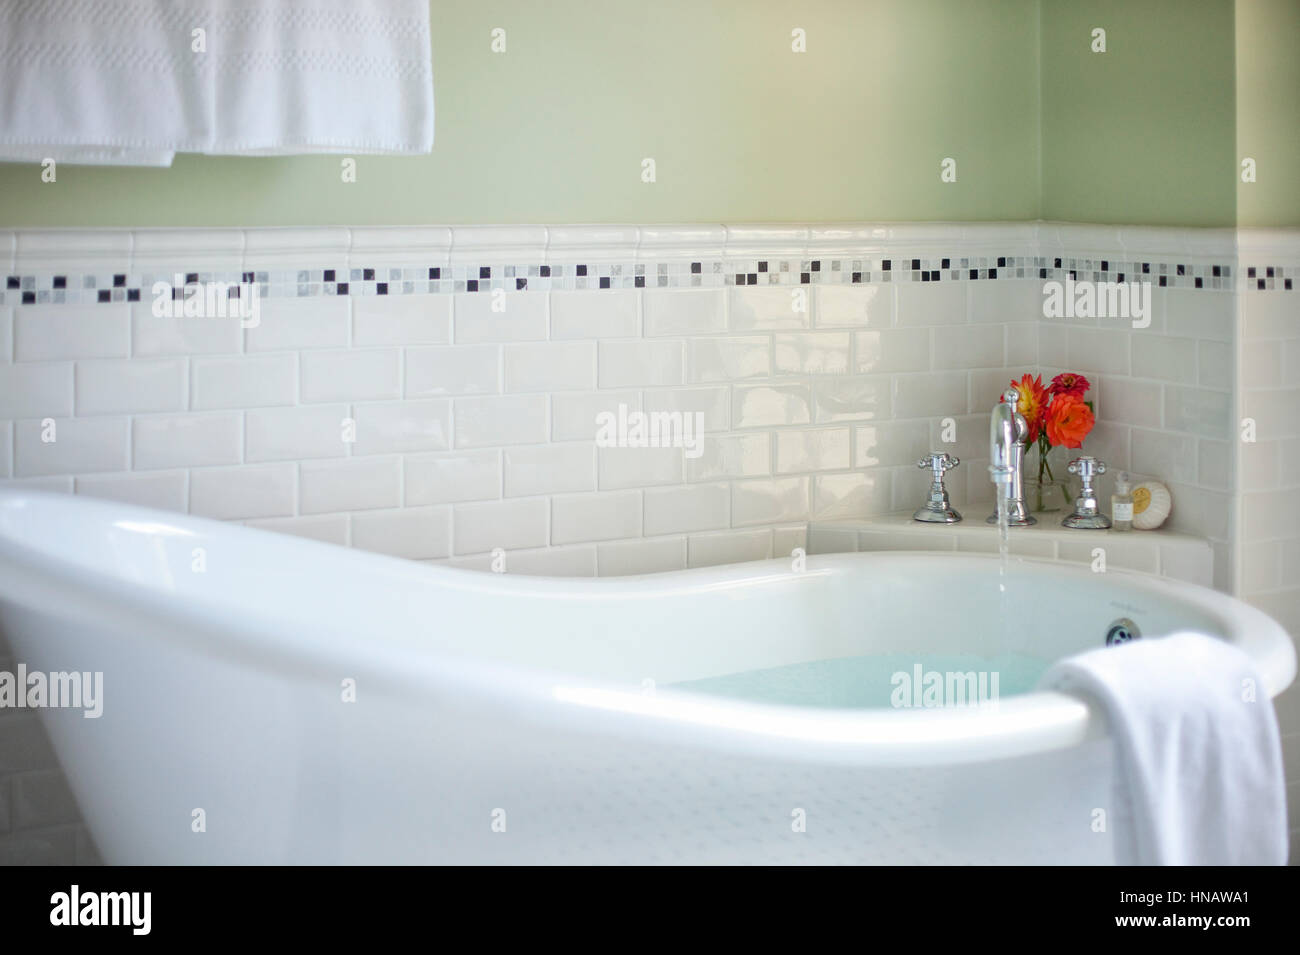 Detail of claw foot tub with faucet on, Cliffside Inn, Newport, RI. - Stock Image